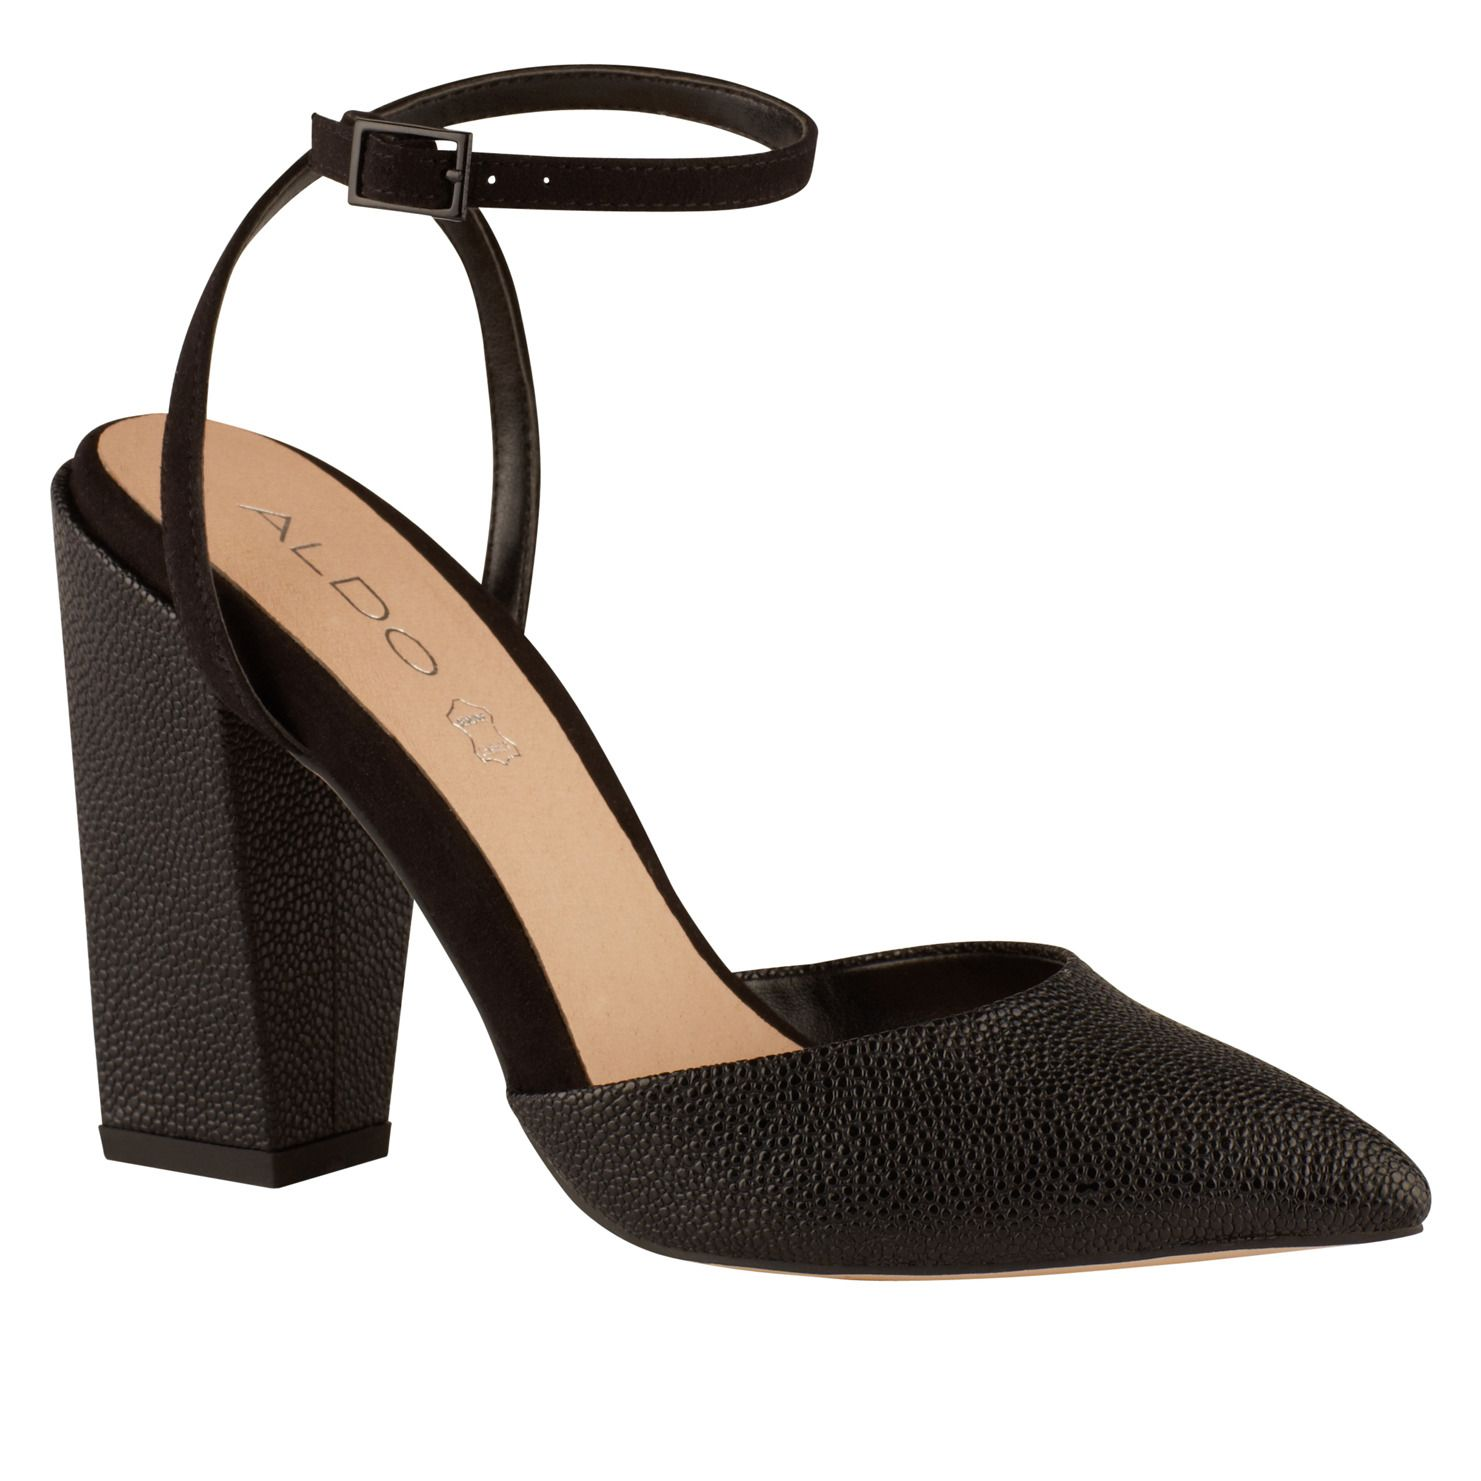 87dbc26c647 WELCHPOOL - women s high heels shoes for sale at ALDO Shoes.